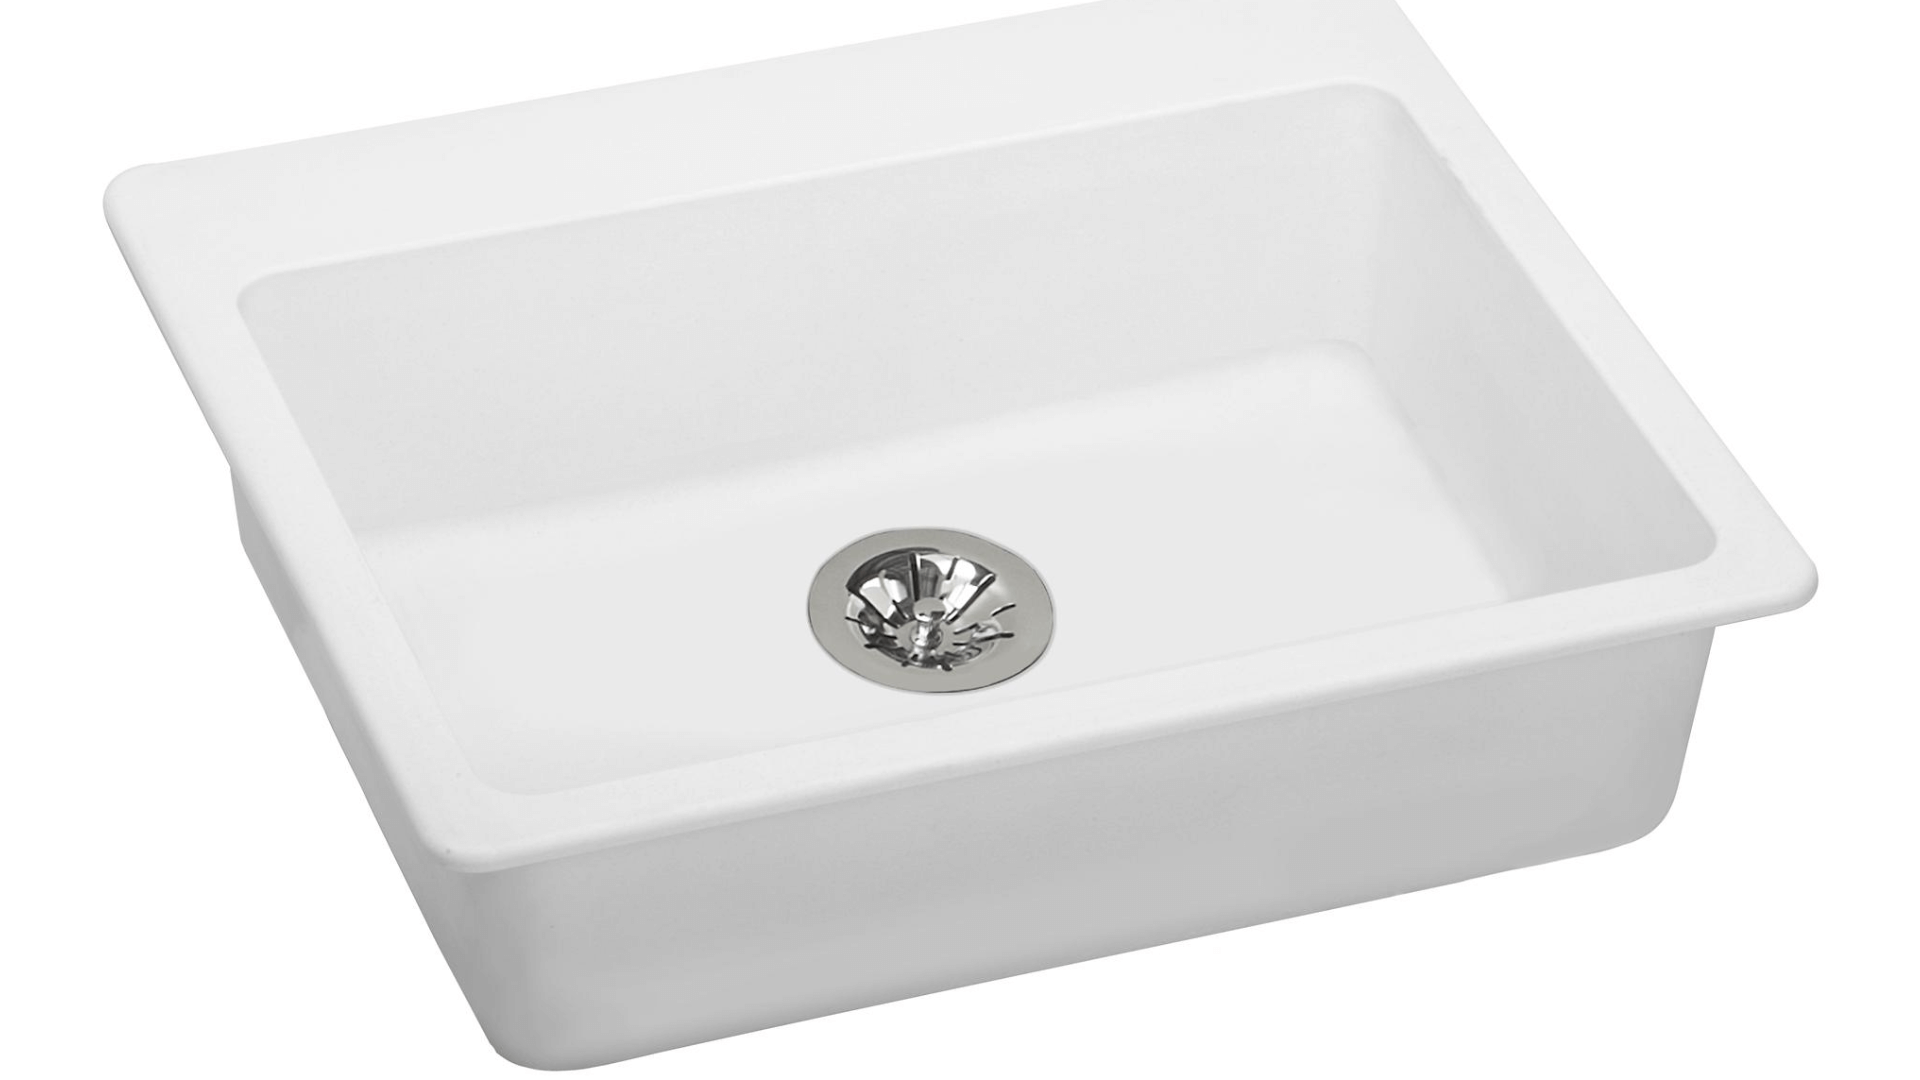 Best Utility Tubs Reviews